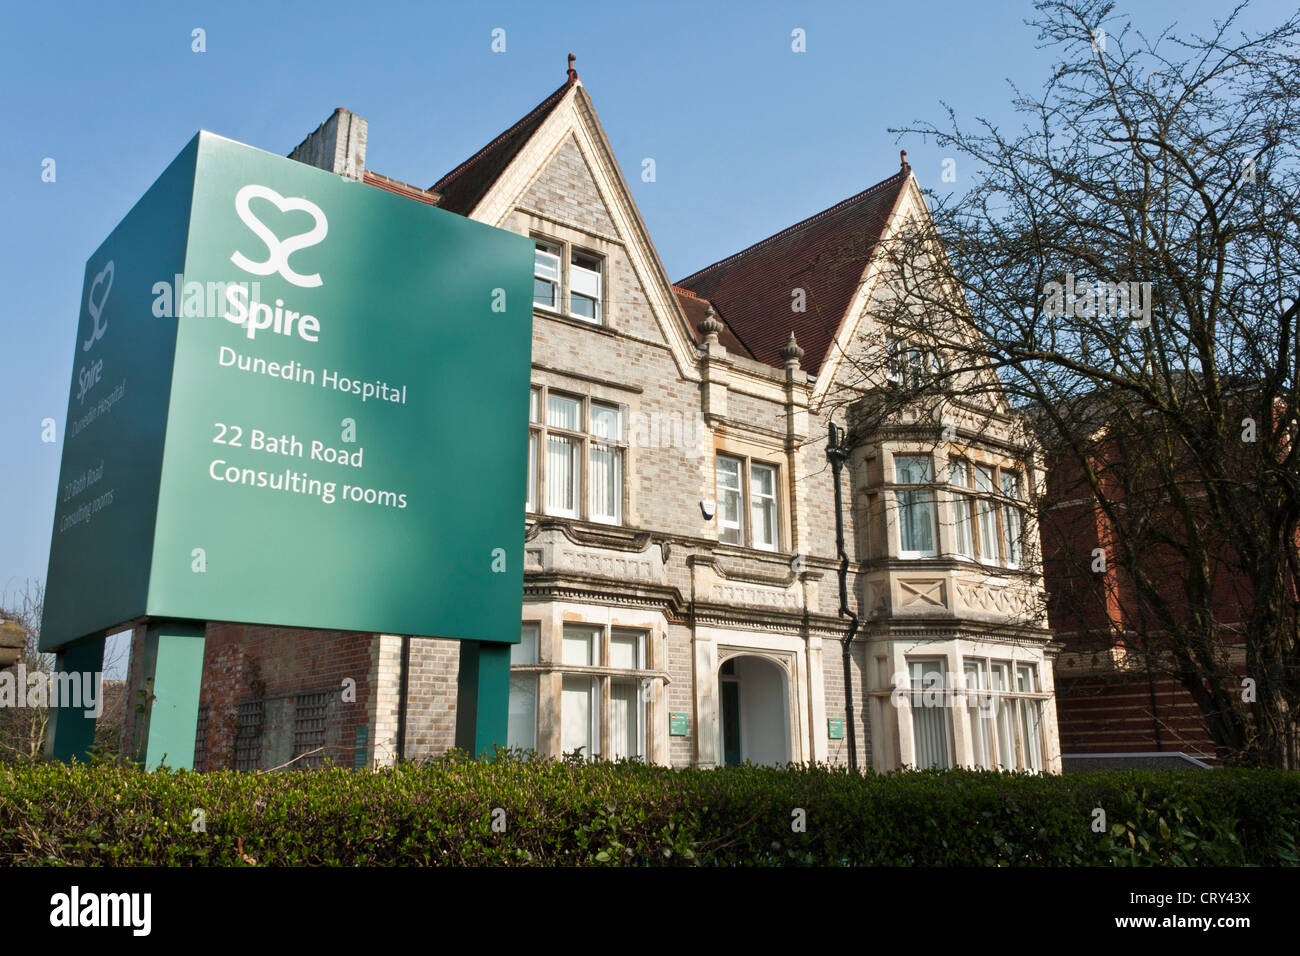 Exterior of Dunedin Hospital, a part of Spire Healthcare, in Reading, Berkshire, England. - Stock Image